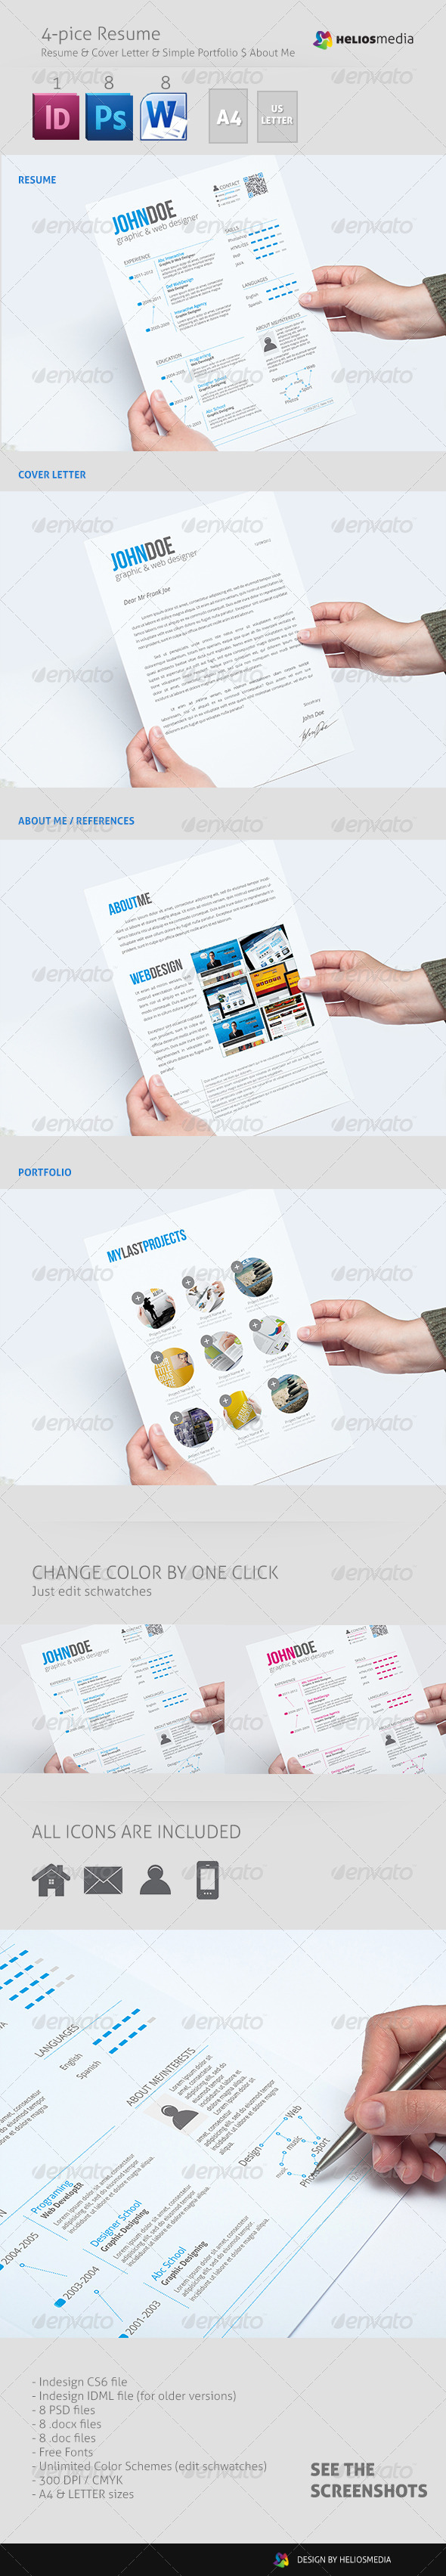 GraphicRiver 4-pice Professional Resume 4817193